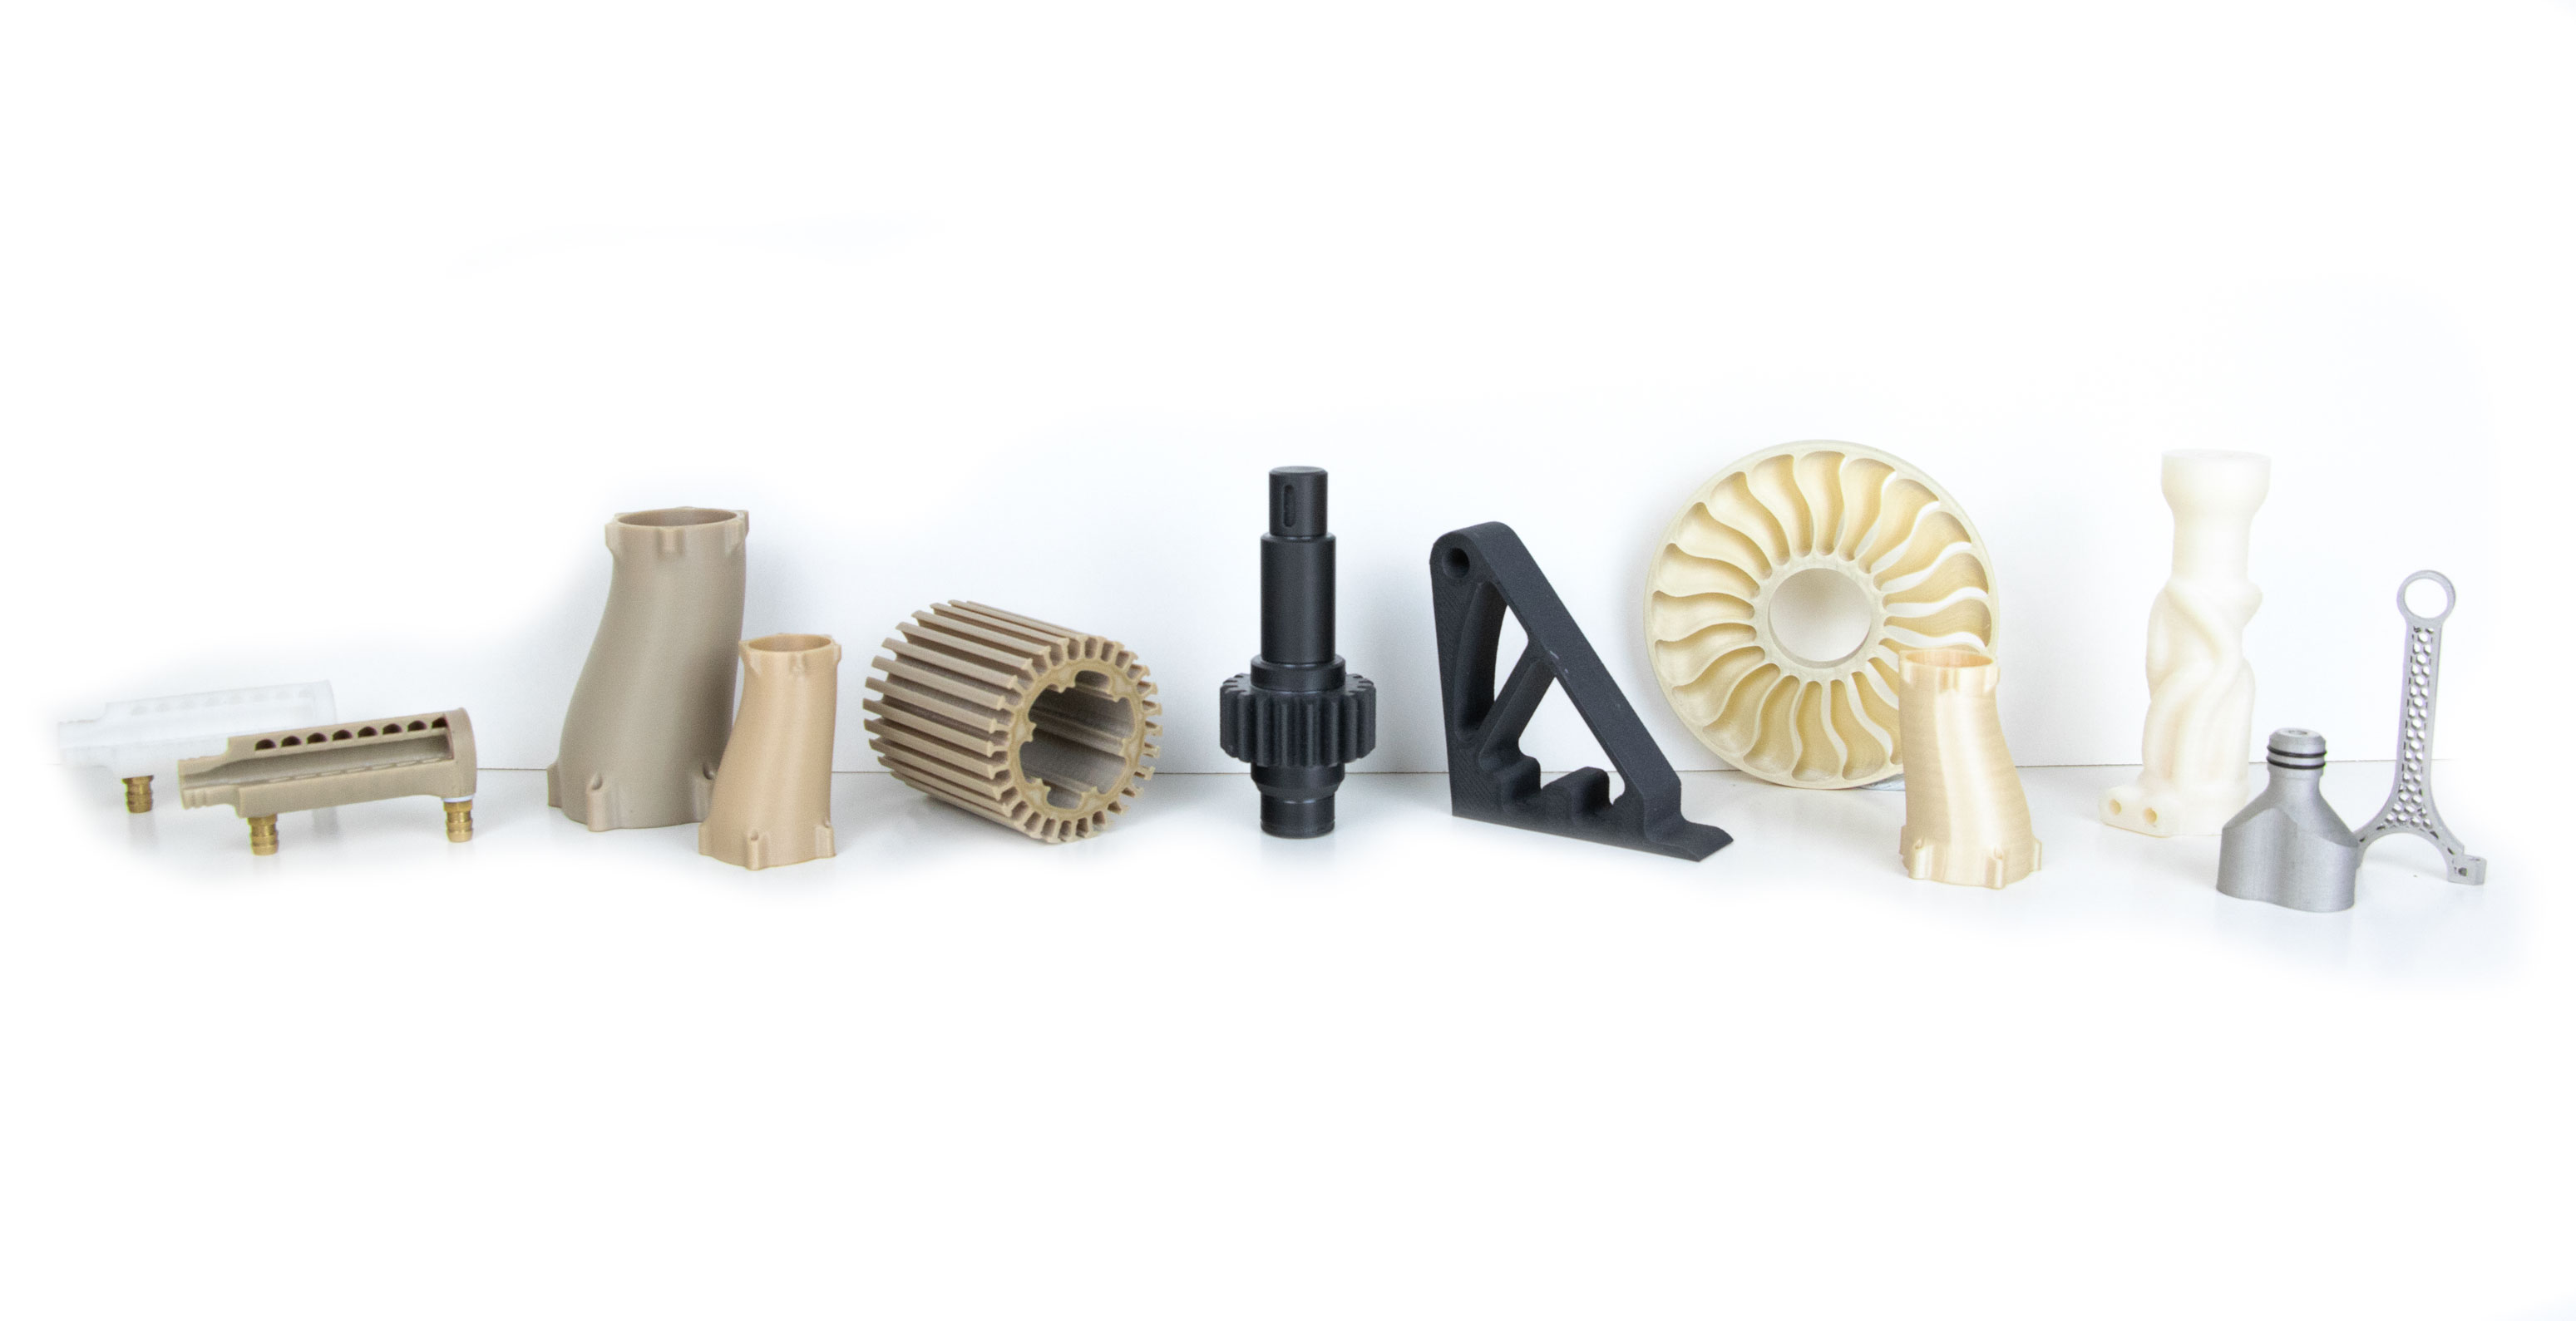 Home - 3D Printing from Apium Additive Technologies GmbH